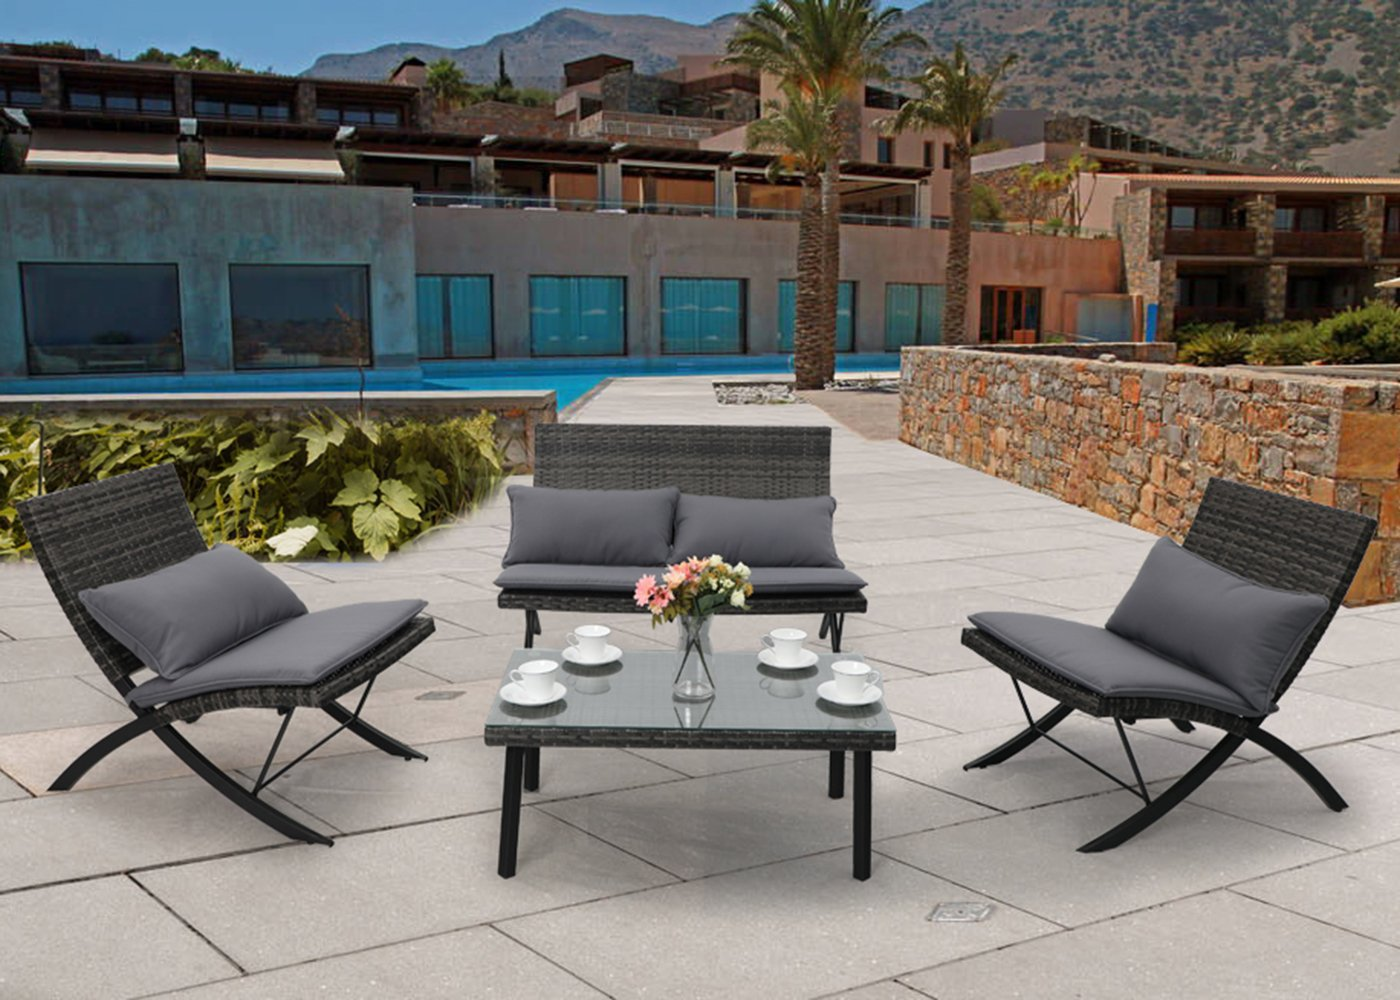 PHI VILLA 4-Piece Modern Conversation Set All Weather Cushioned Patio Furniture w/Loveseat, 2 Recliners Chair, Coffee Table - Charcoal